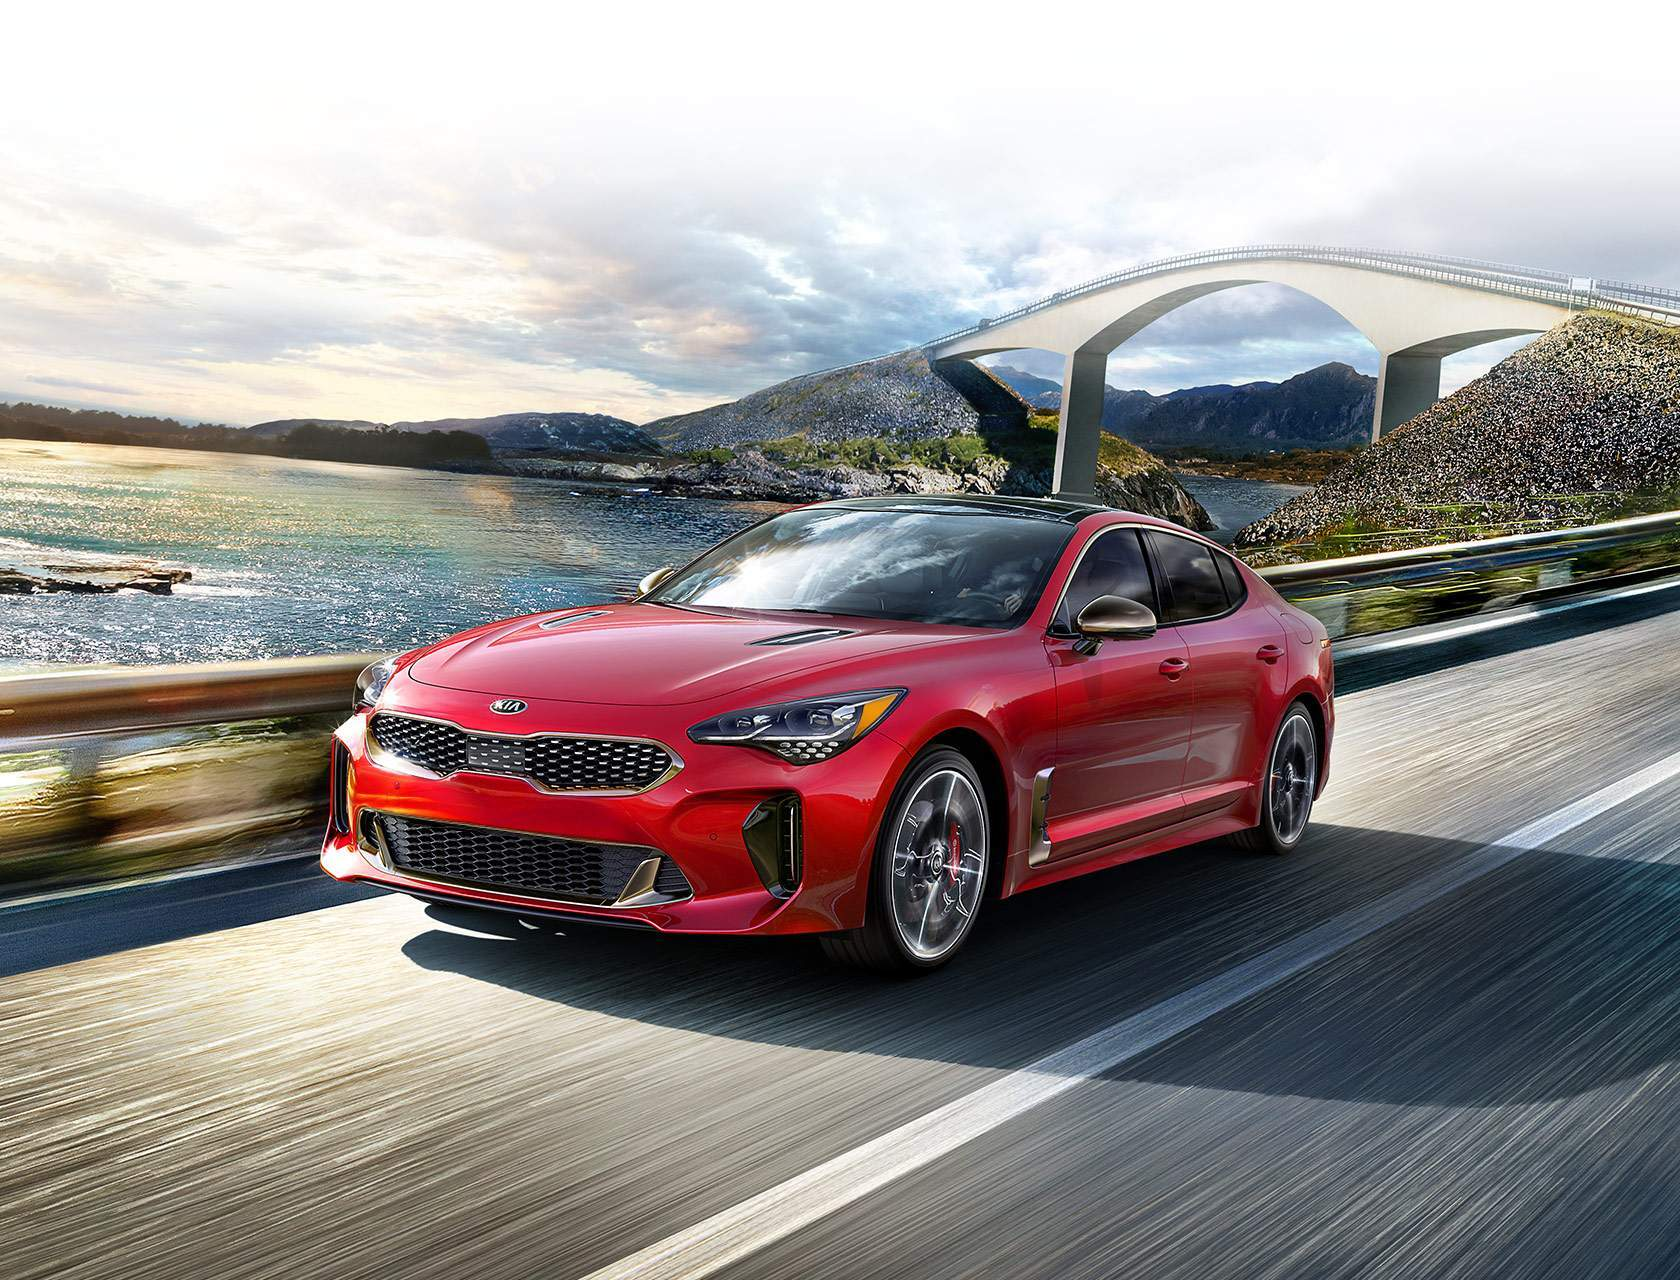 2018 Kia Stinger in Fort Wayne, IN